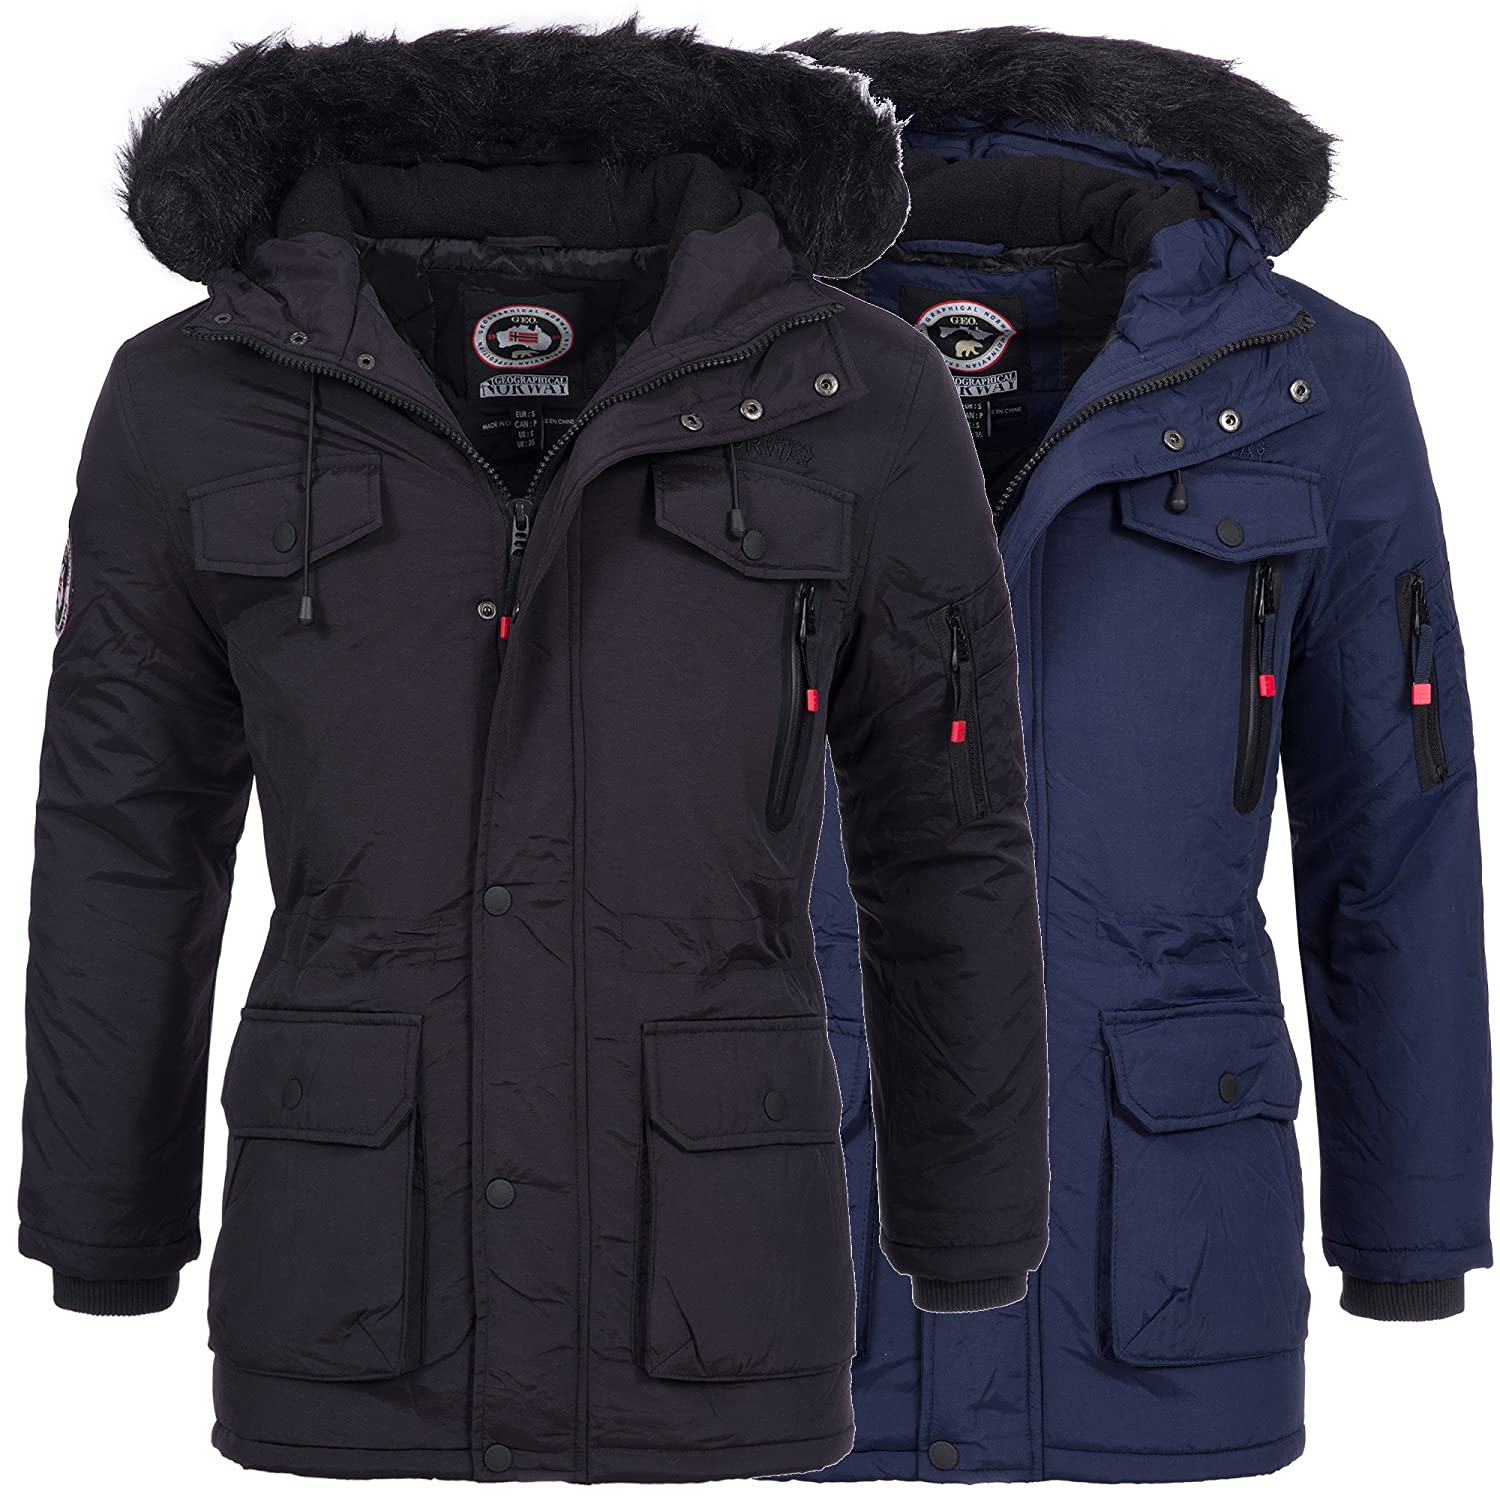 geographical norway alos herren winterjacke jacke parka mantel warm gef ttert gr s xxxl kaufen. Black Bedroom Furniture Sets. Home Design Ideas